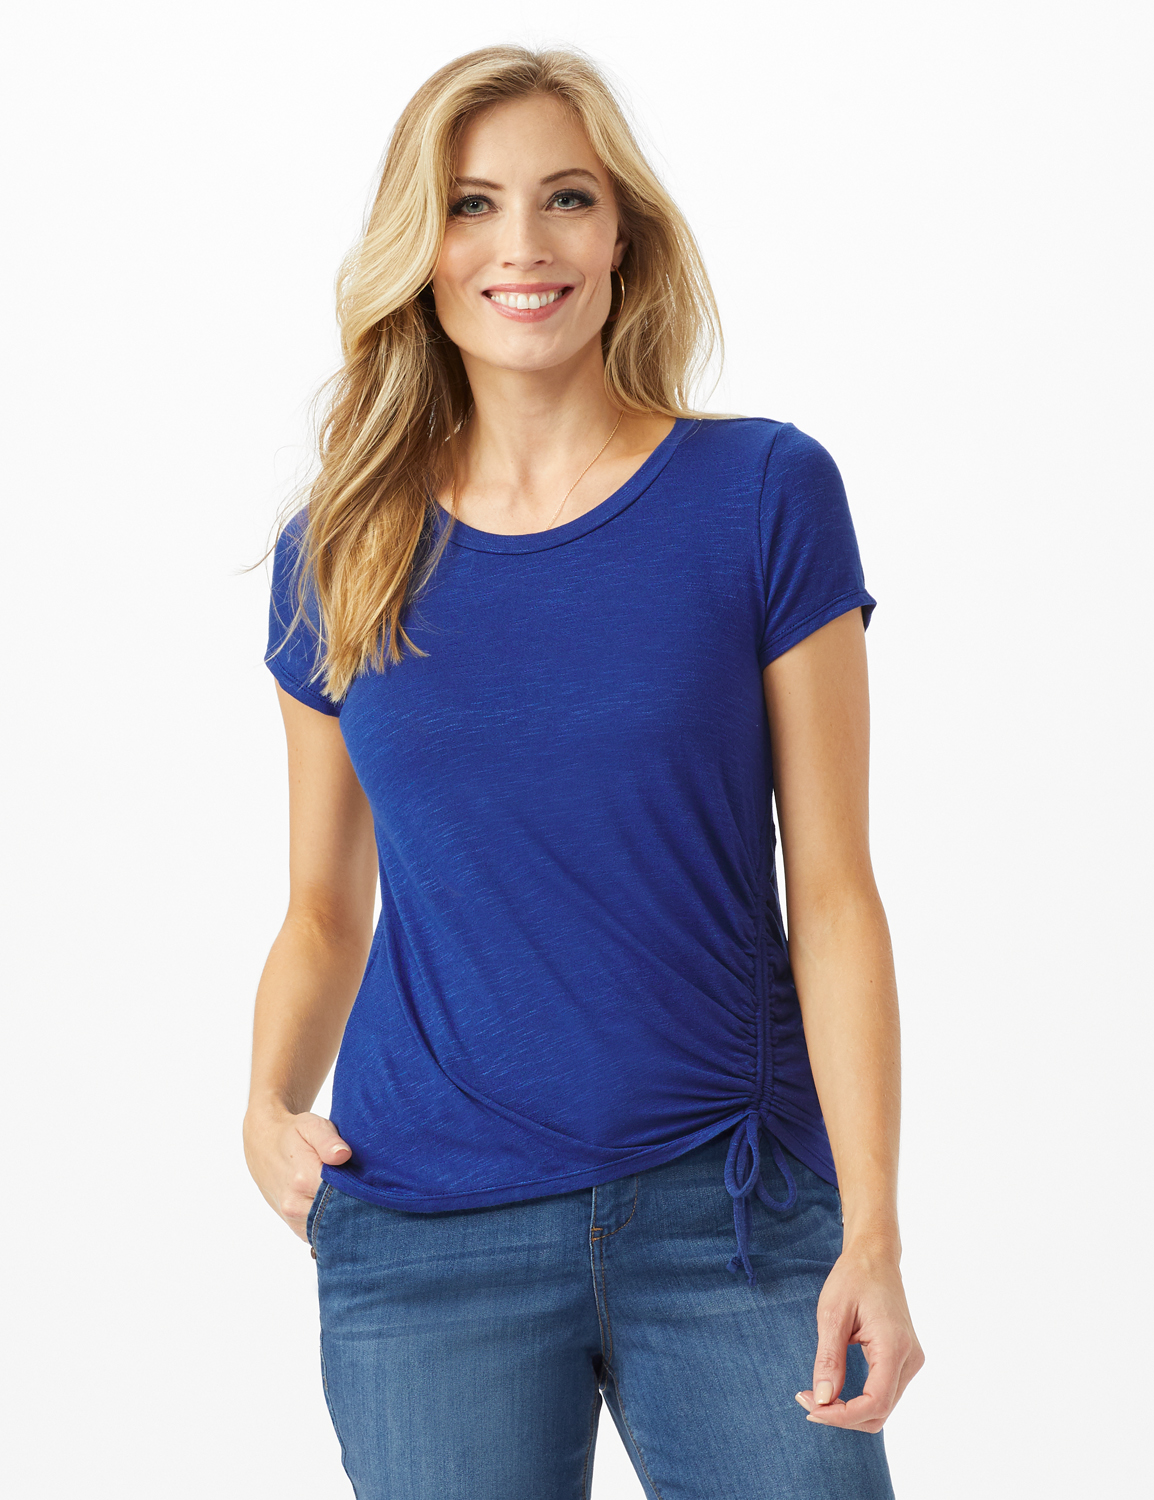 Asymmetrical Side Cinch Knit Top - Petite -Blue - Front